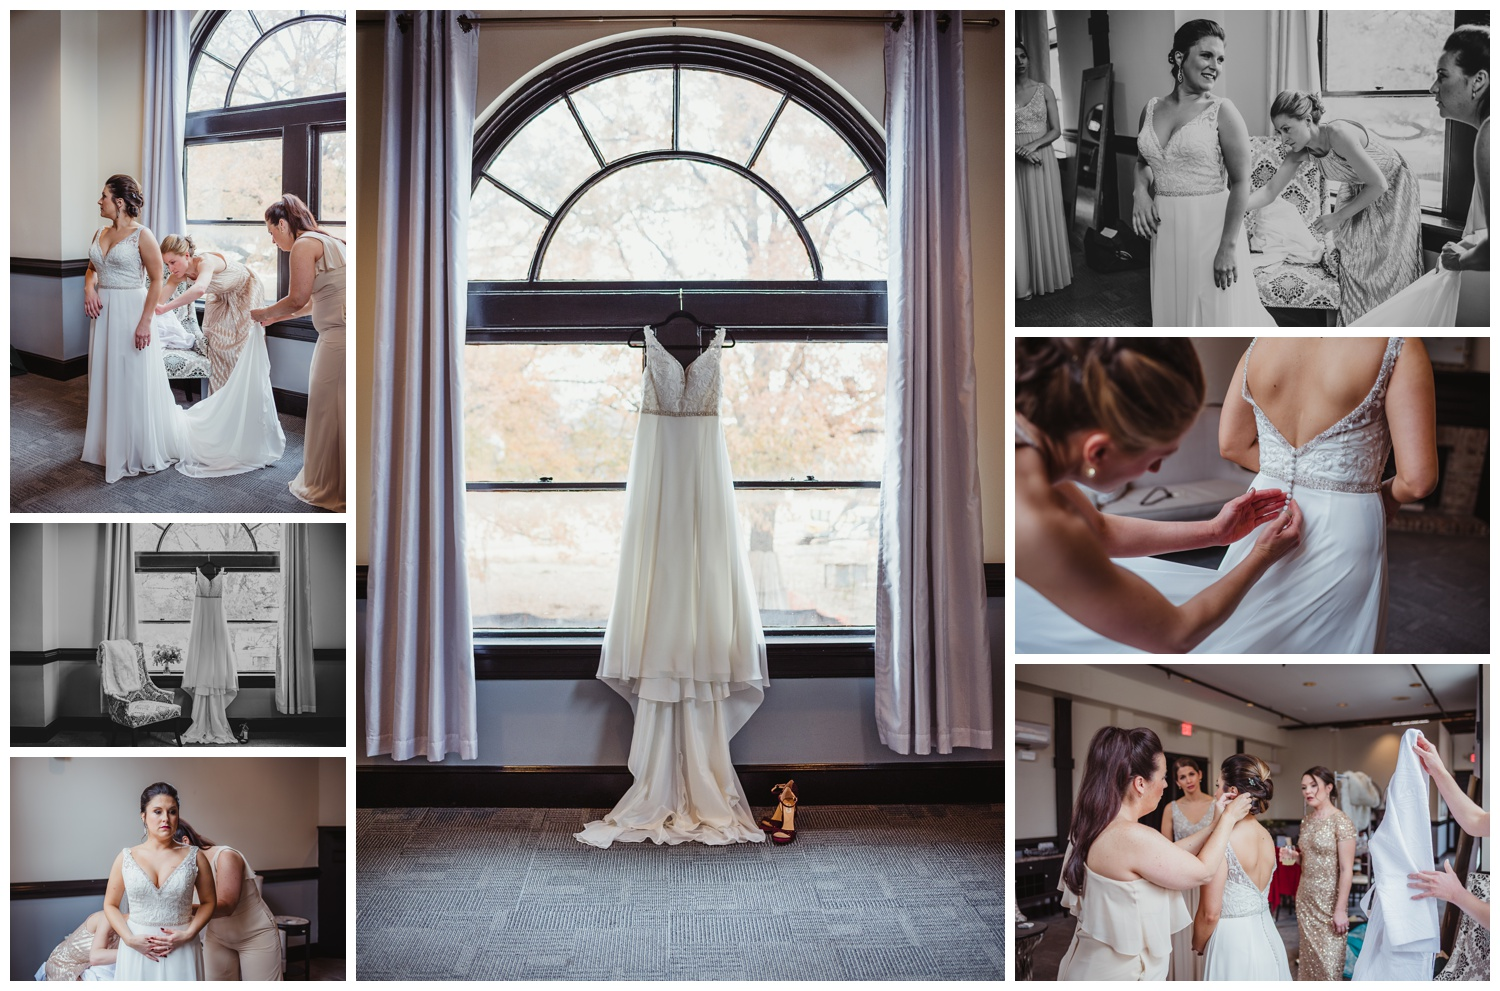 The bride got dressed with her bridesmaids before her wedding ceremony in downtown Raleigh, photos by Rose Trail Images.